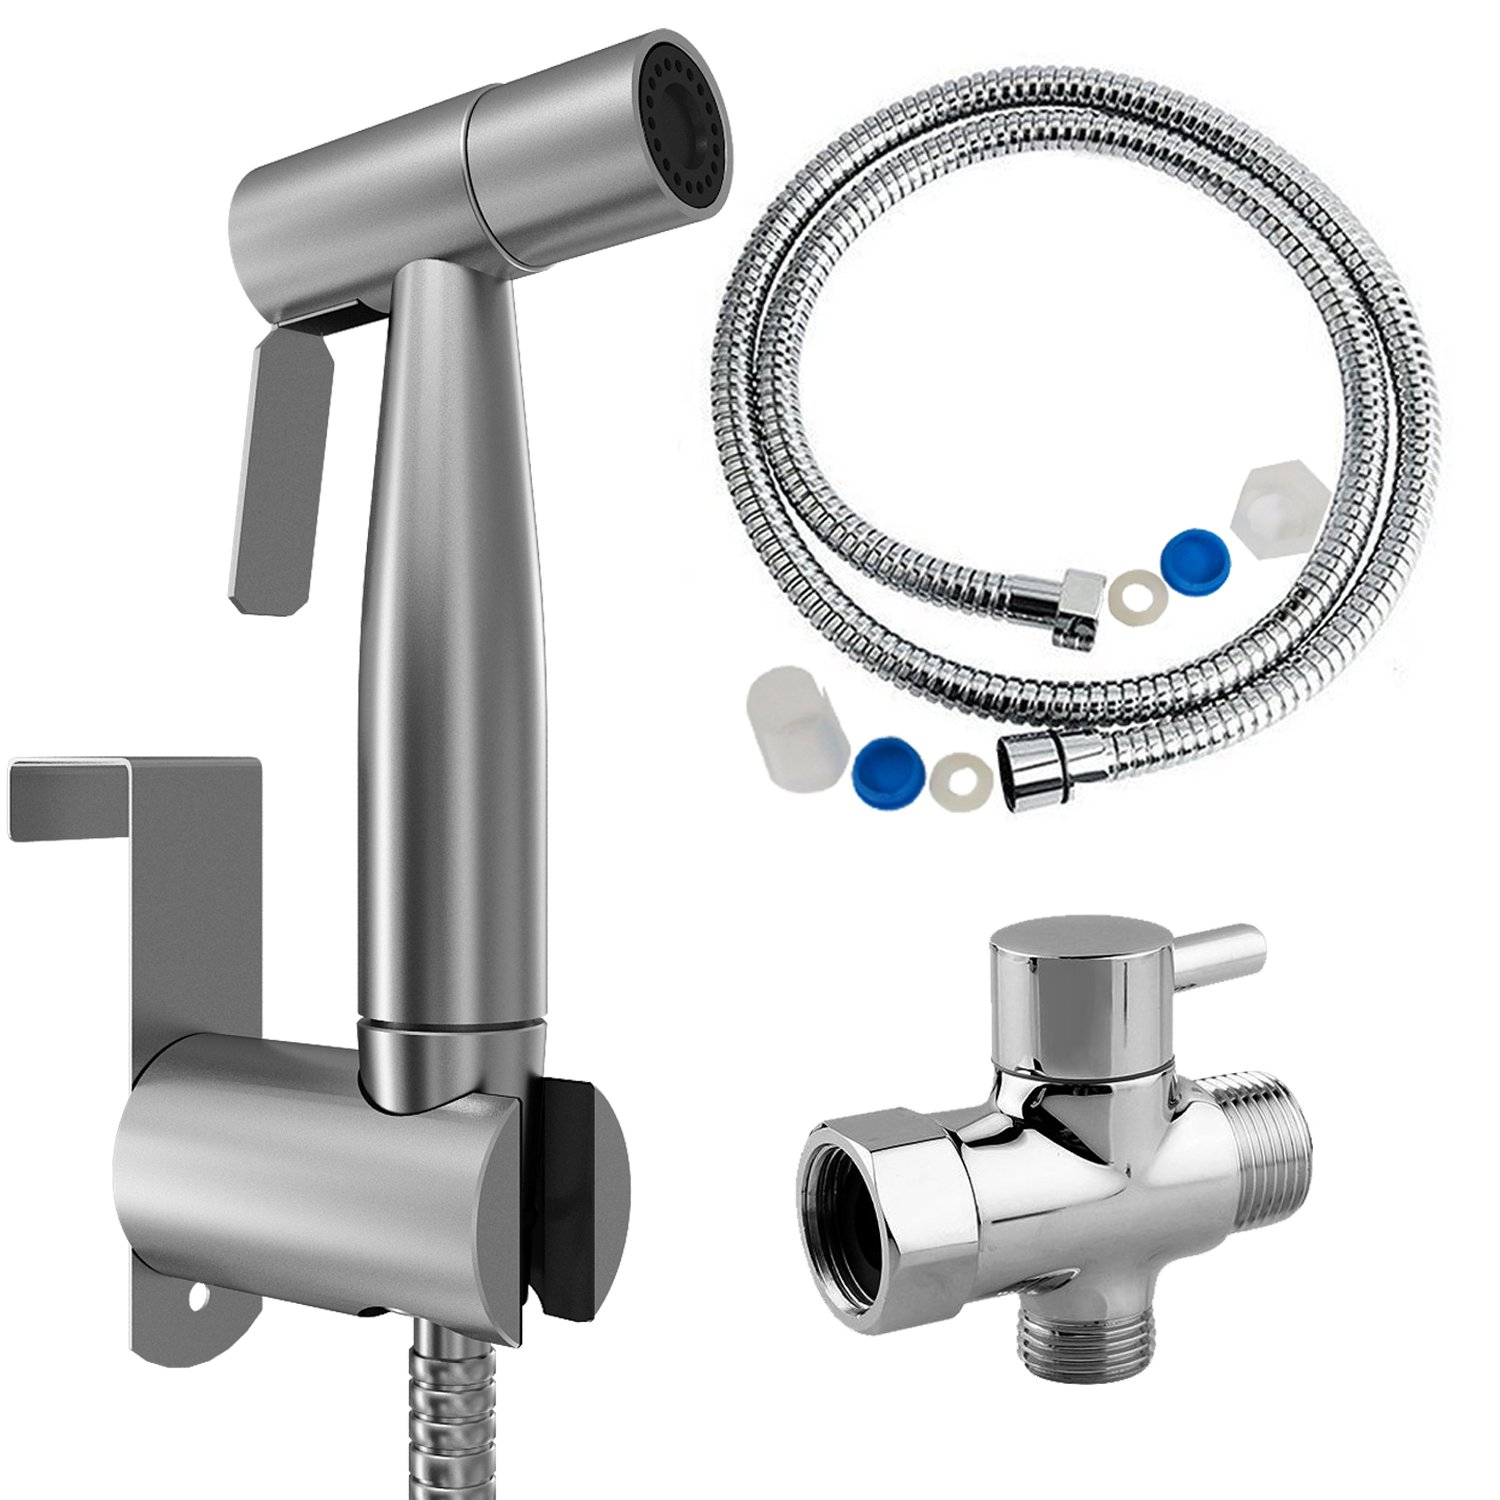 Cloth Diaper Sprayer, Yogaily Stainless Steel Bidet Sprayer Kit Hand Held Toilet Diaper Washer Complete Set - Adjustable Pressure Control - Easy to Install & Use